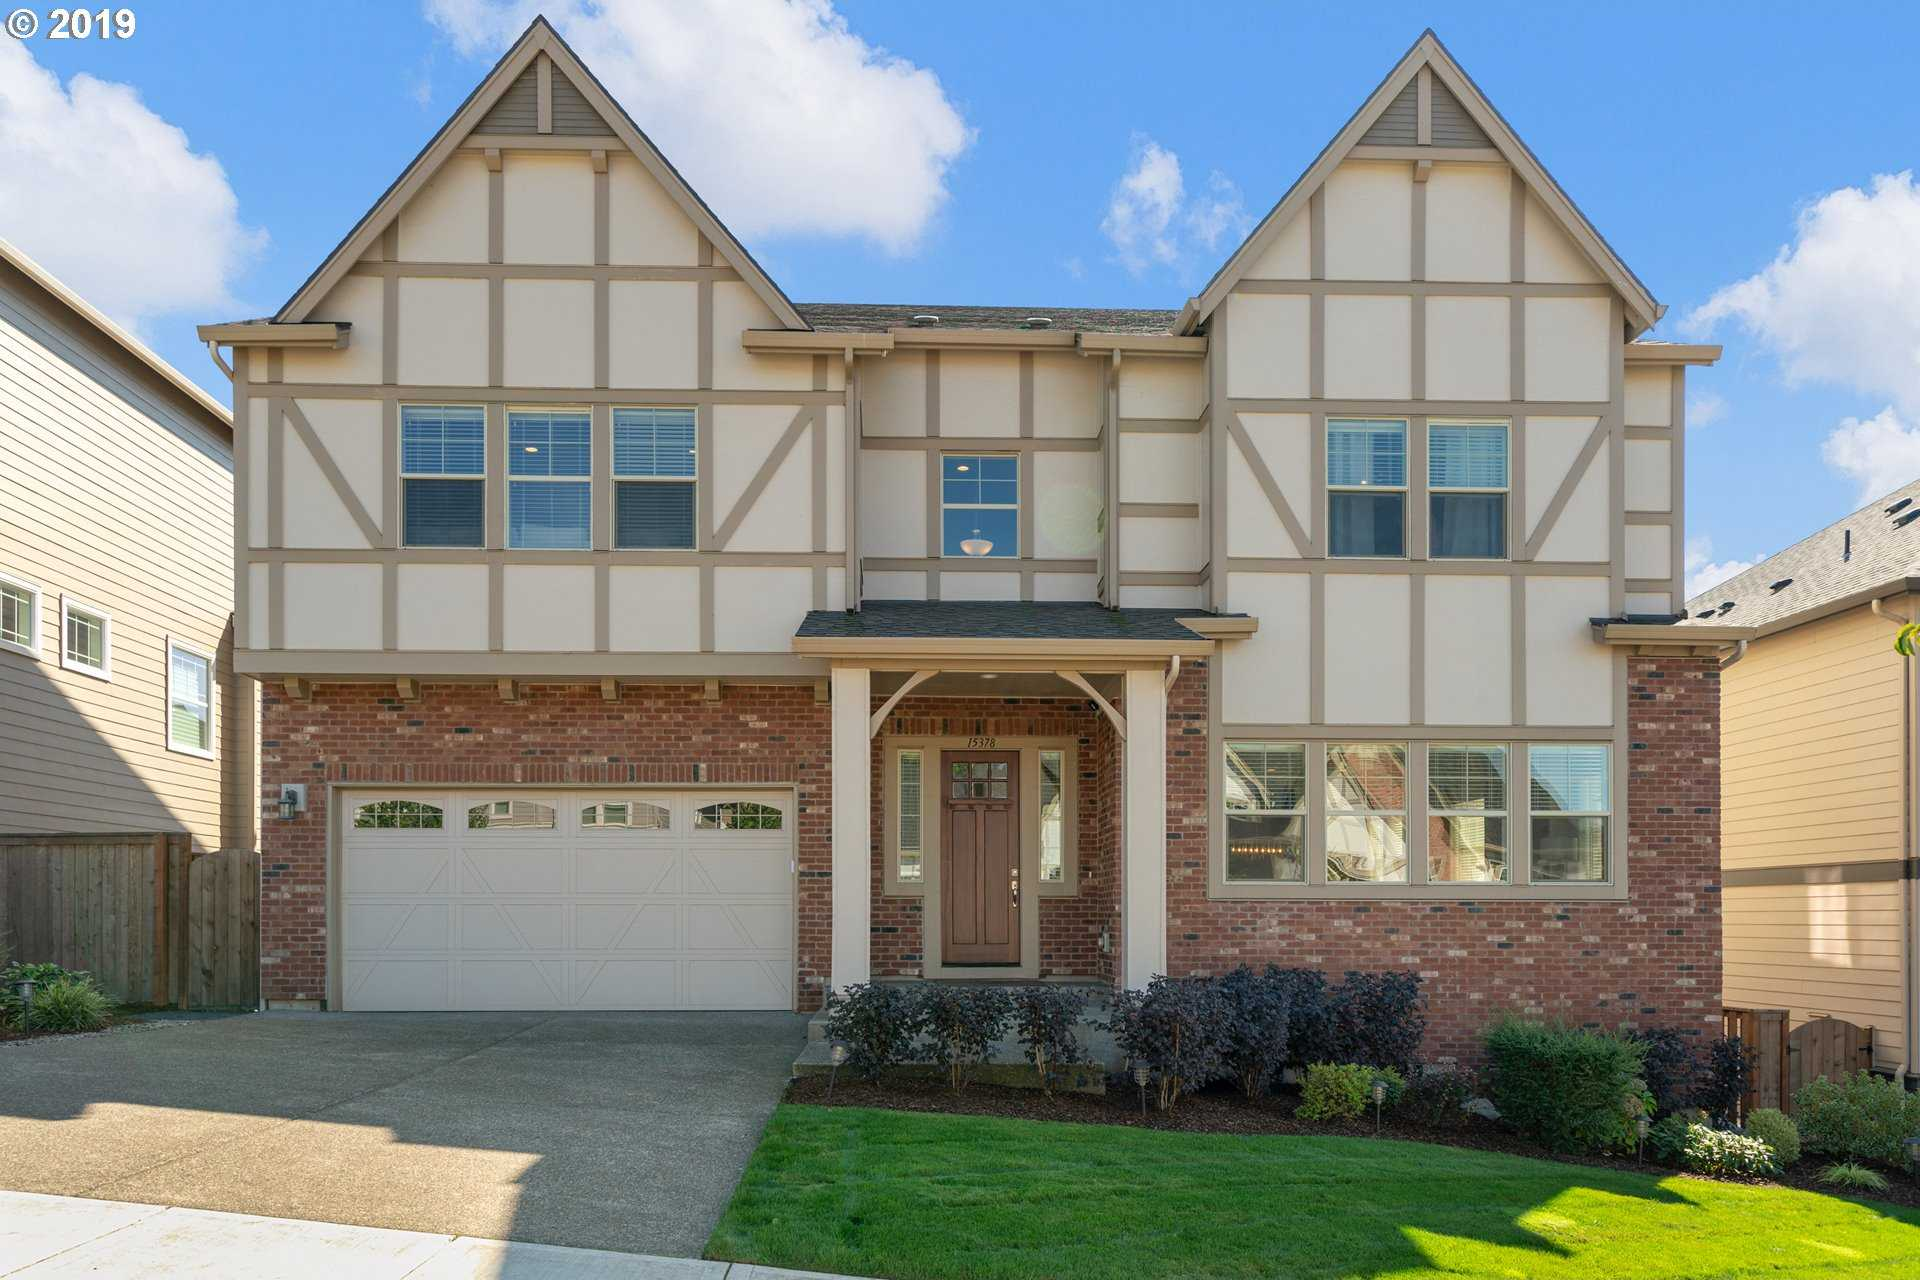 $779,000 - 4Br/3Ba -  for Sale in The Estates At River Terrace, Tigard